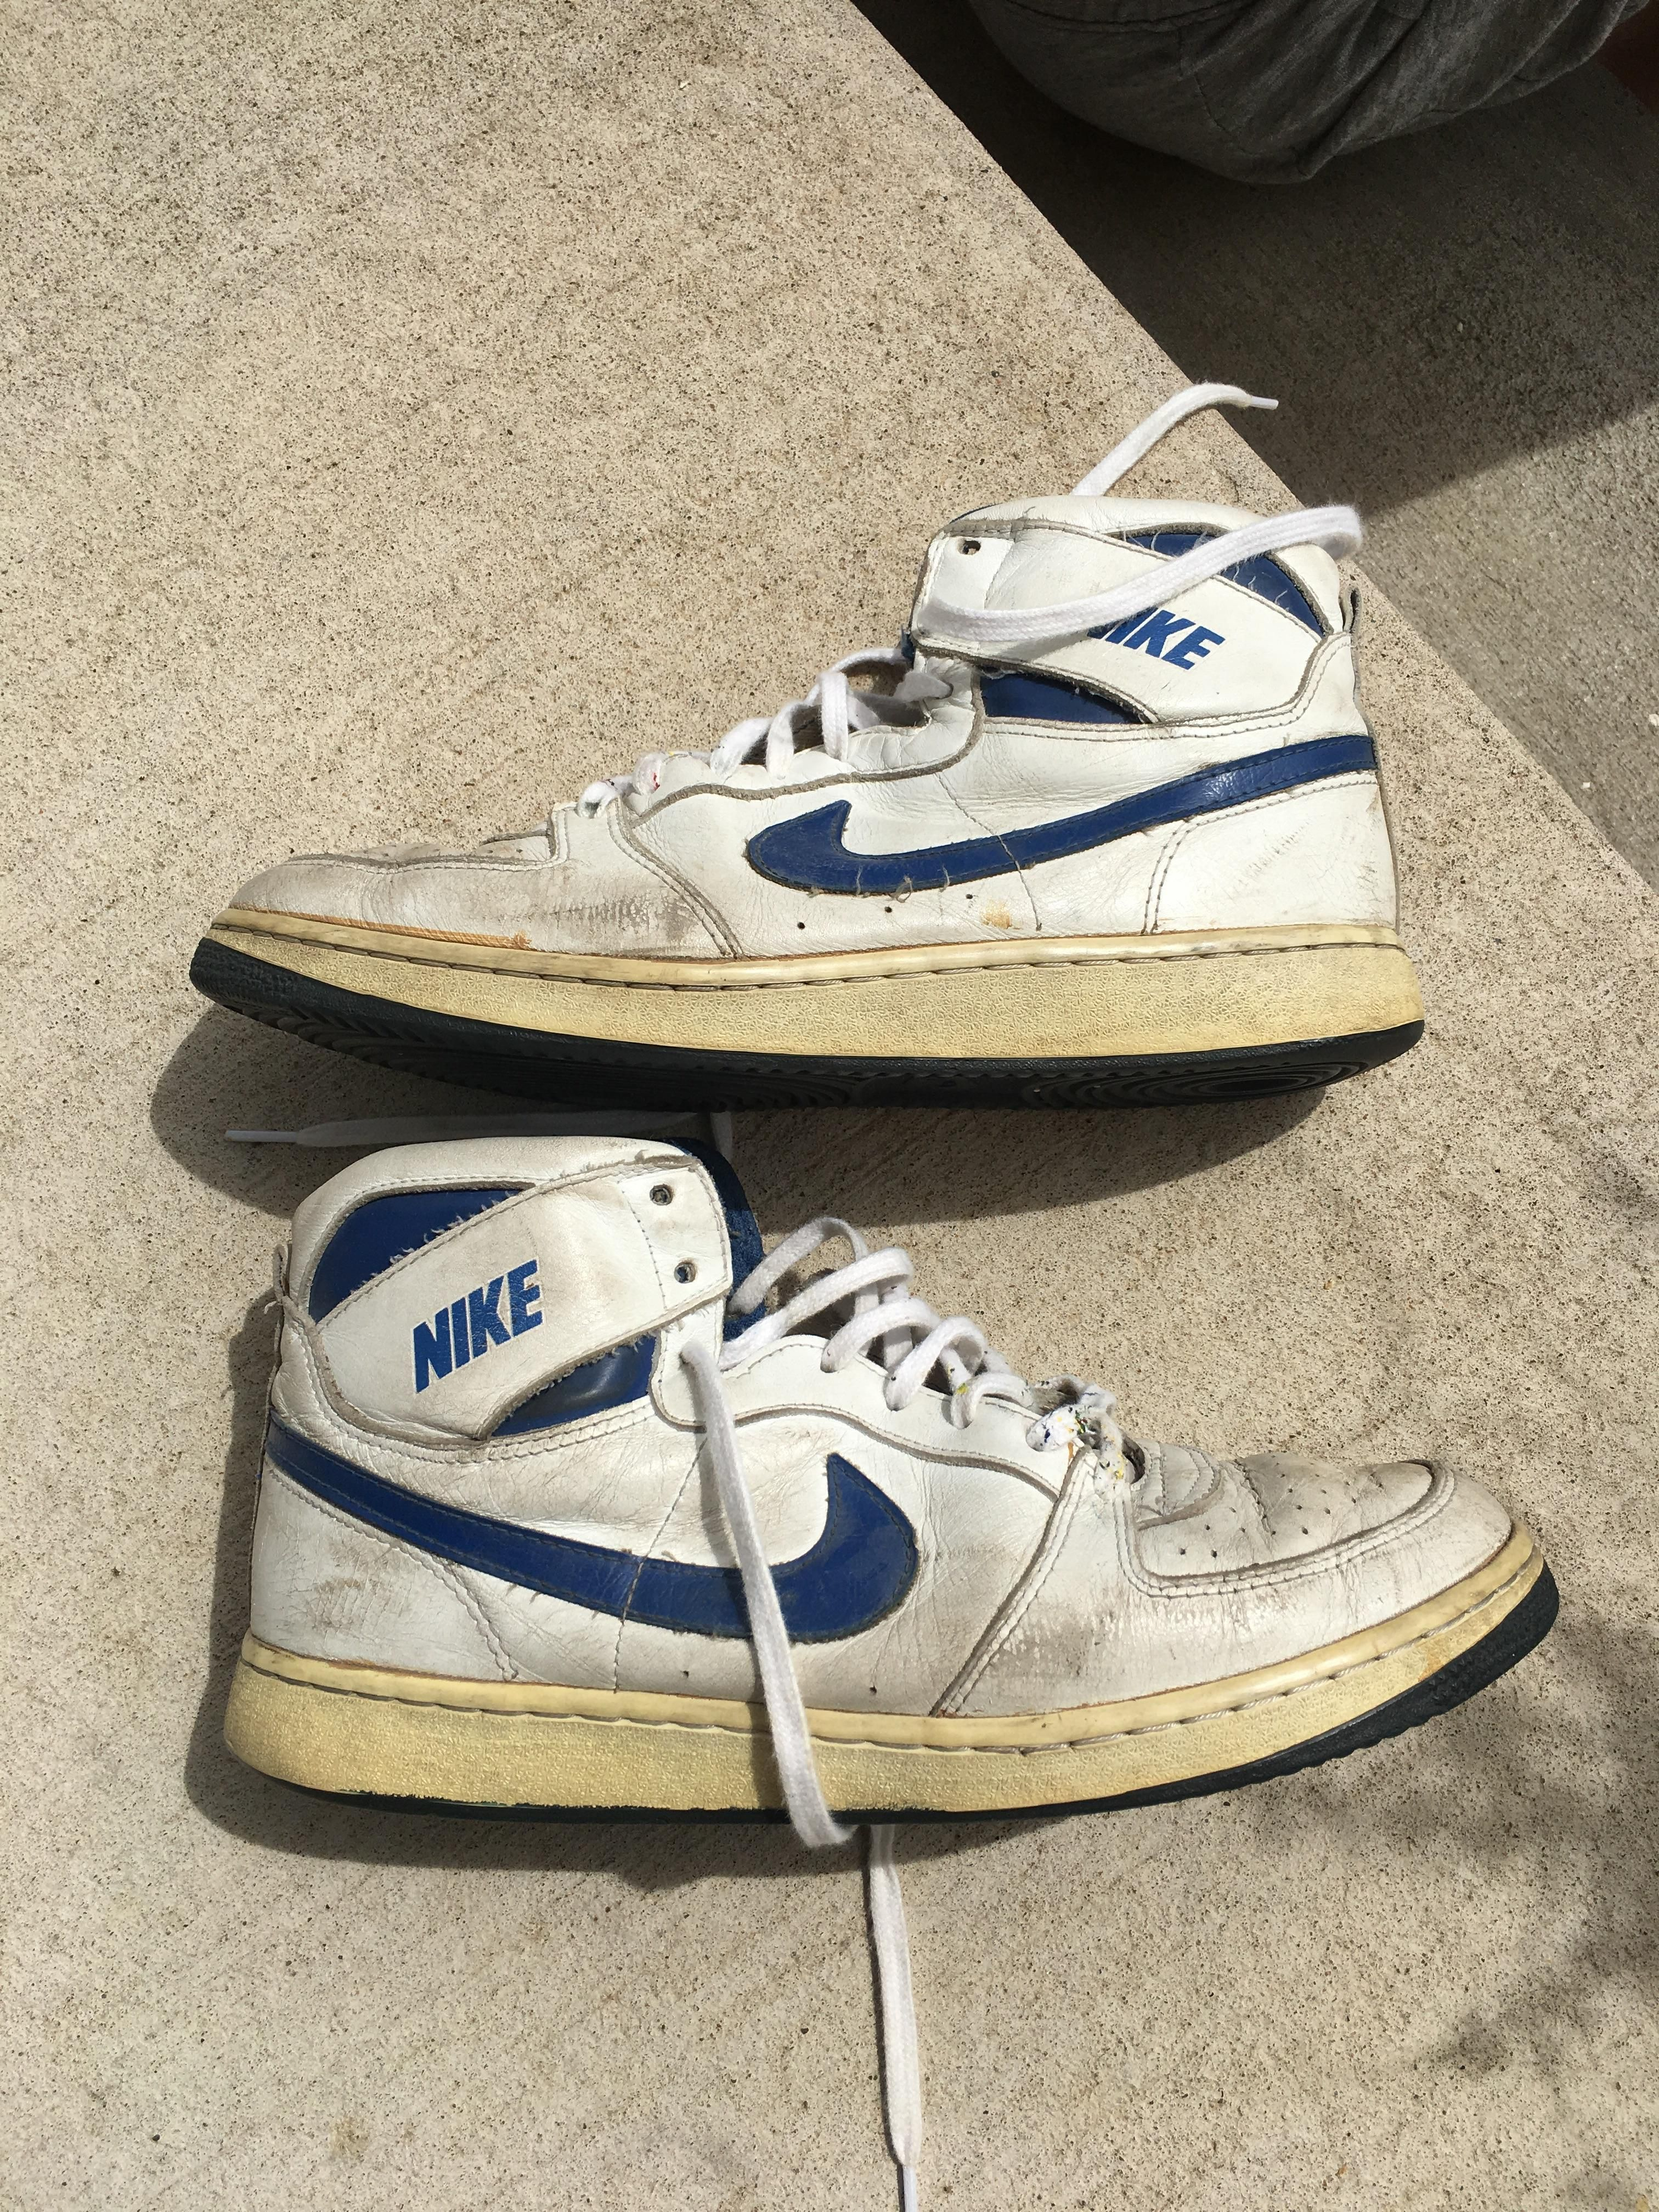 80s shoes, Nike high tops, Classic sneakers